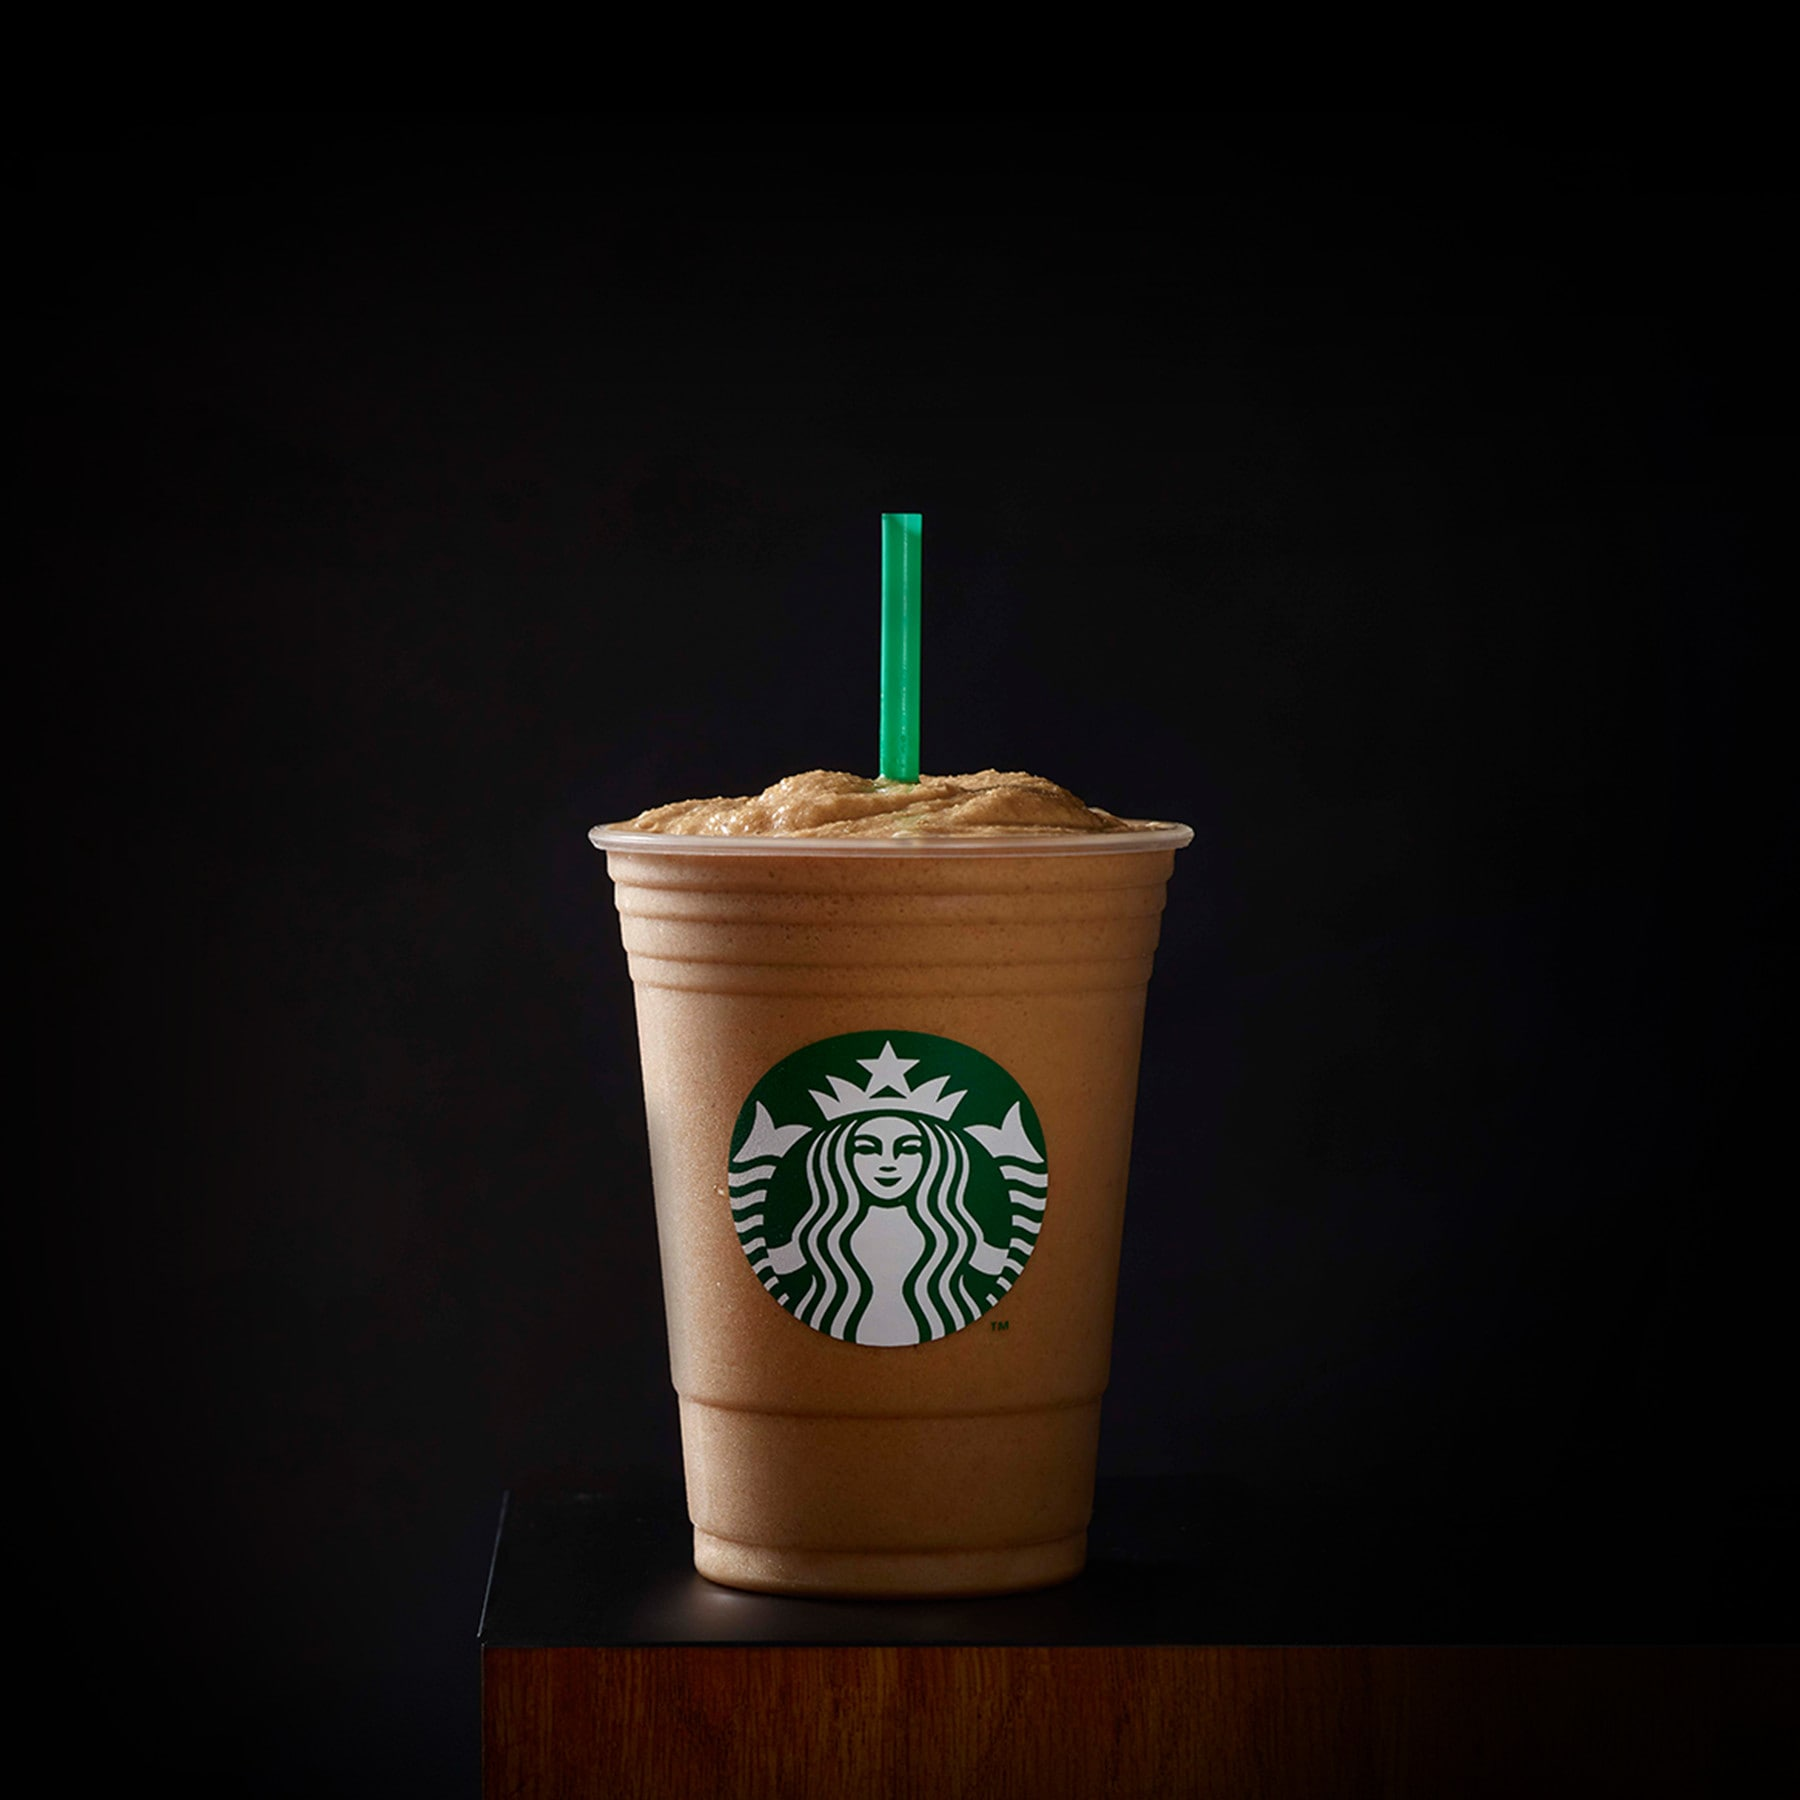 espresso frappuccino® blended coffee | starbucks coffee company